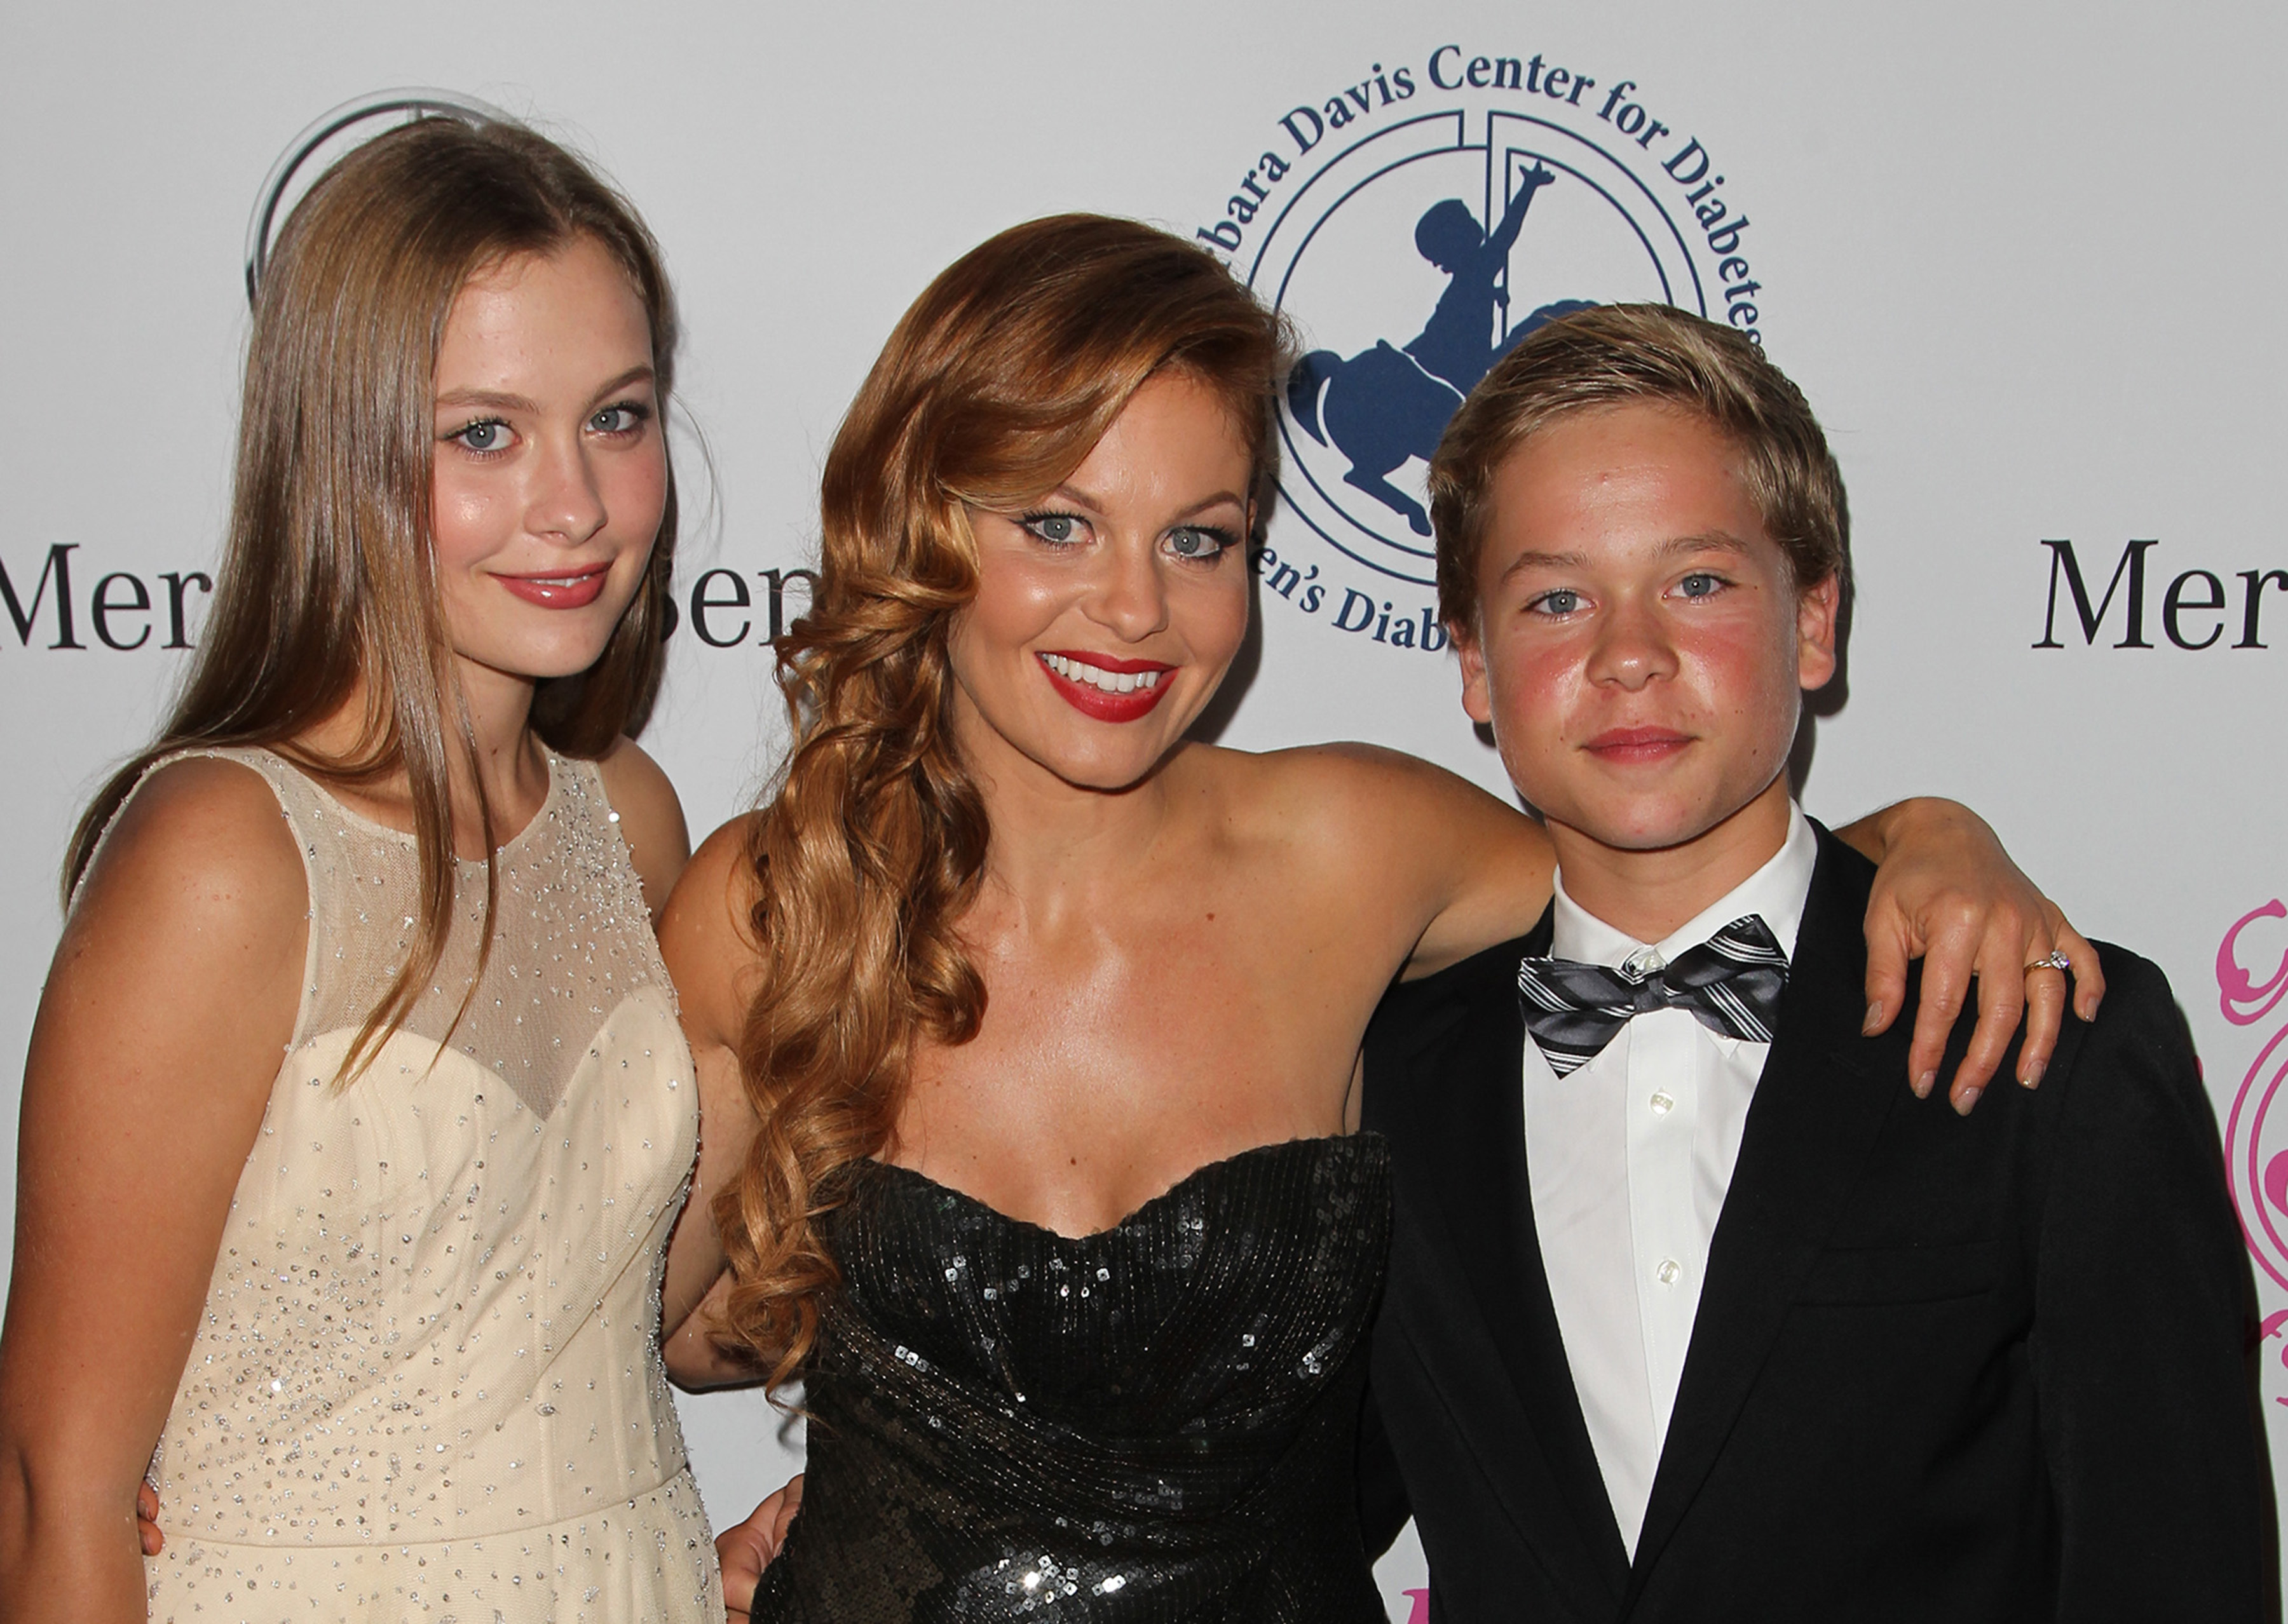 Candace Cameron Bure on how her kids' help with the family dog: